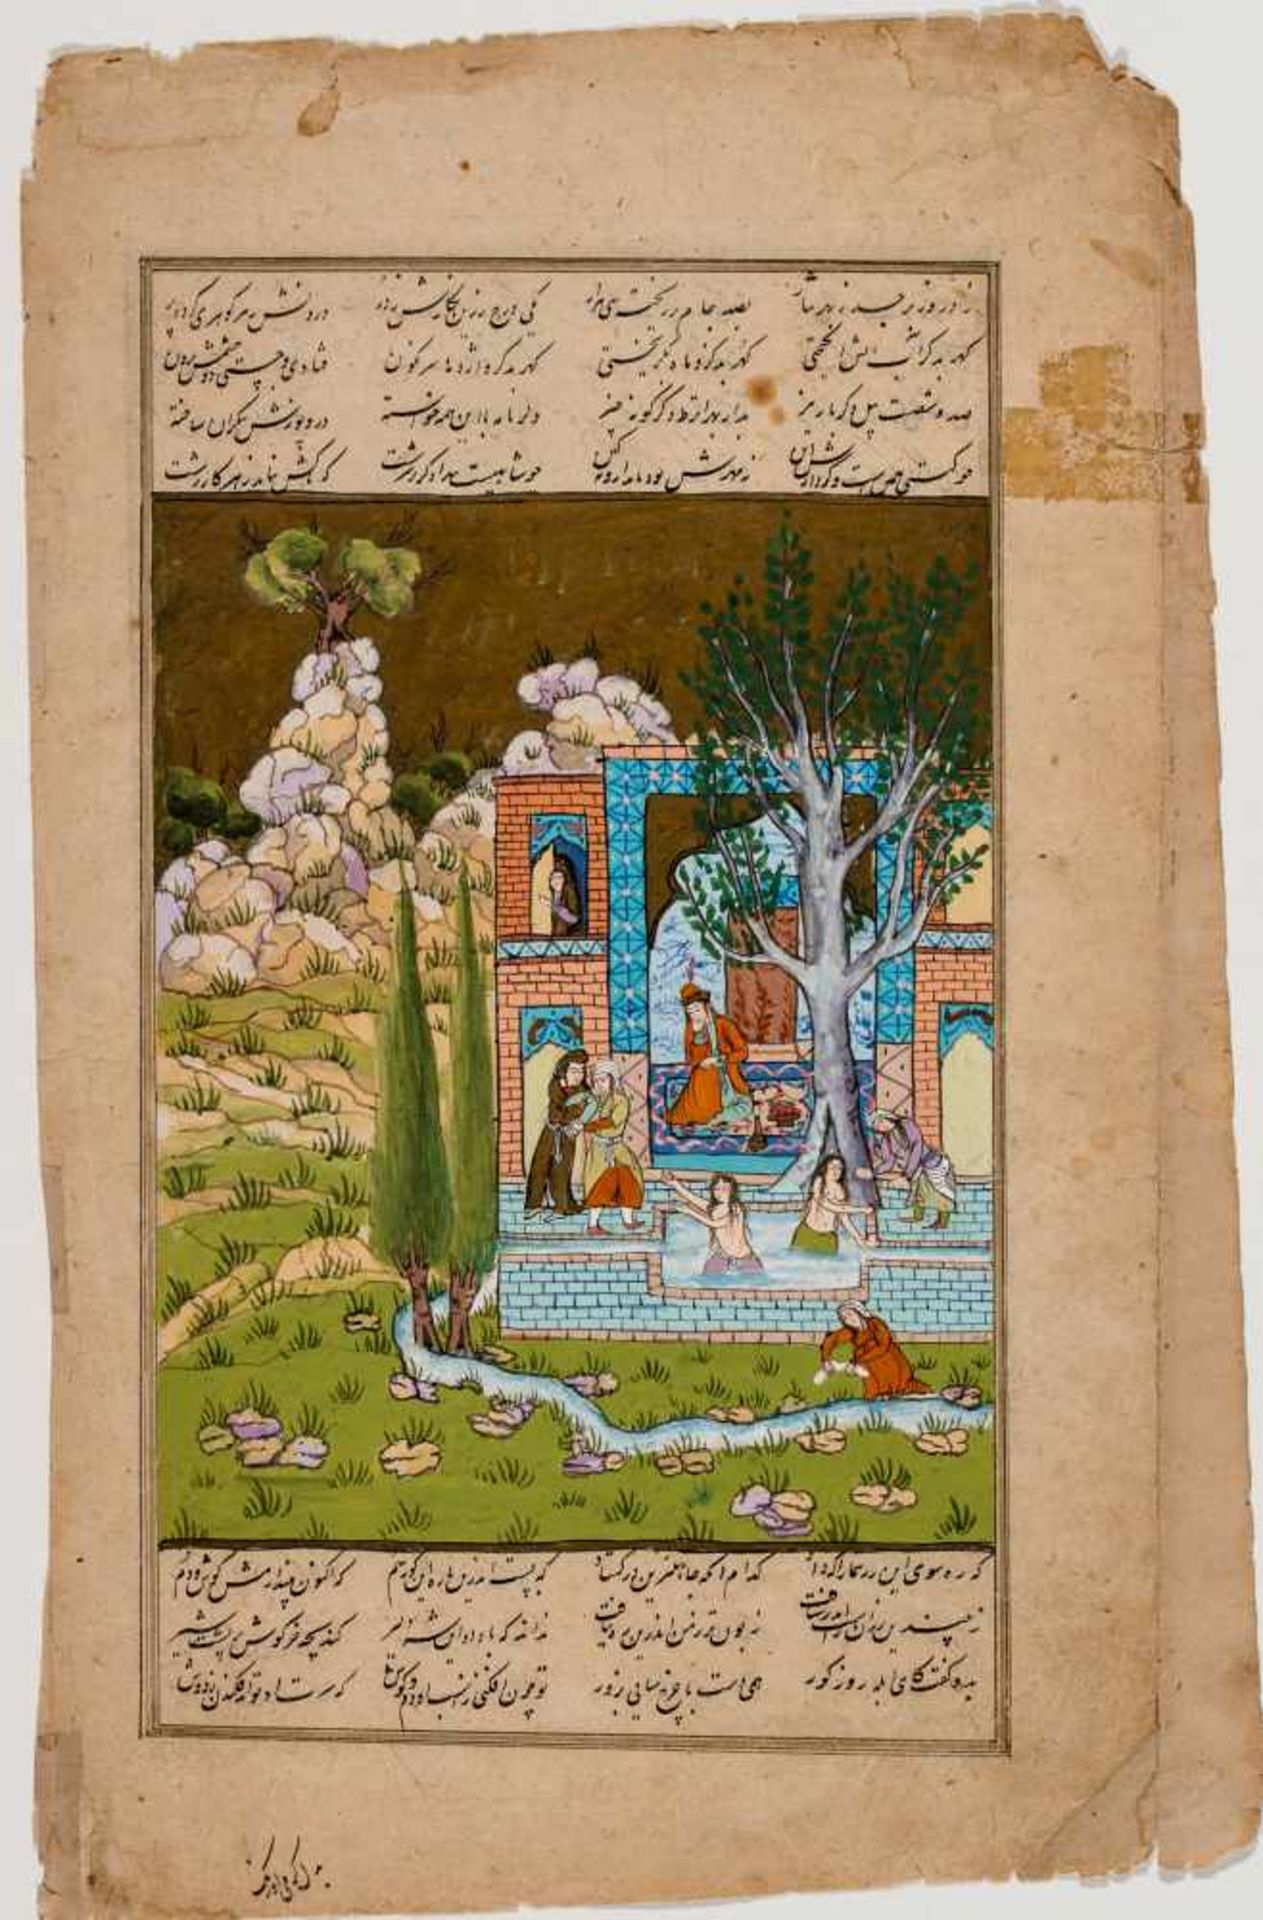 TWO INDO-PERSIAN MINIATURE PAINTINGS WITH CALLIGRAPHY - 19th CENTURYMiniature painting with colors - Image 2 of 5